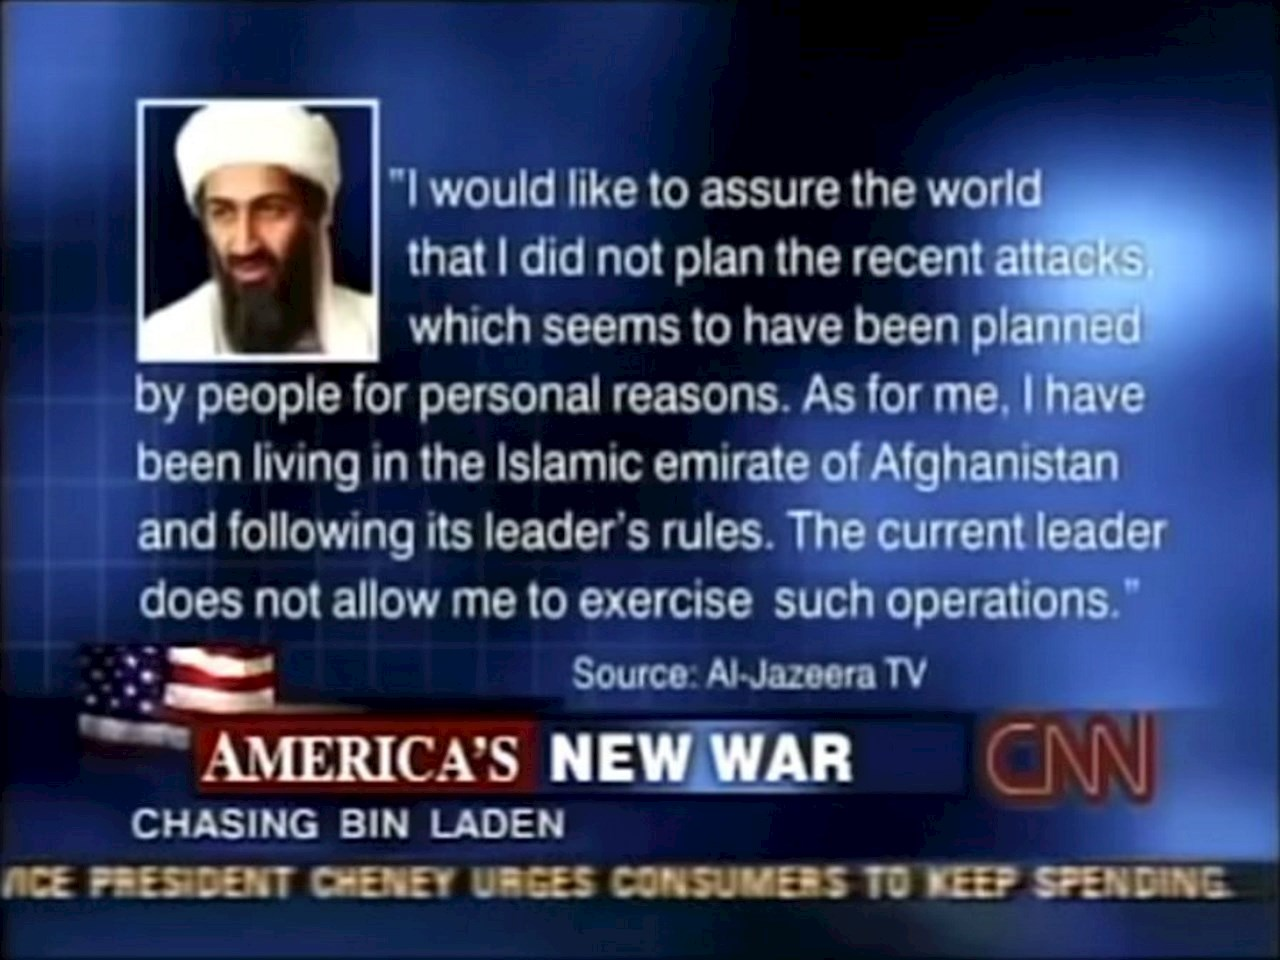 Osama bin Laden never admitted or took any responsibility for the events of 9-11